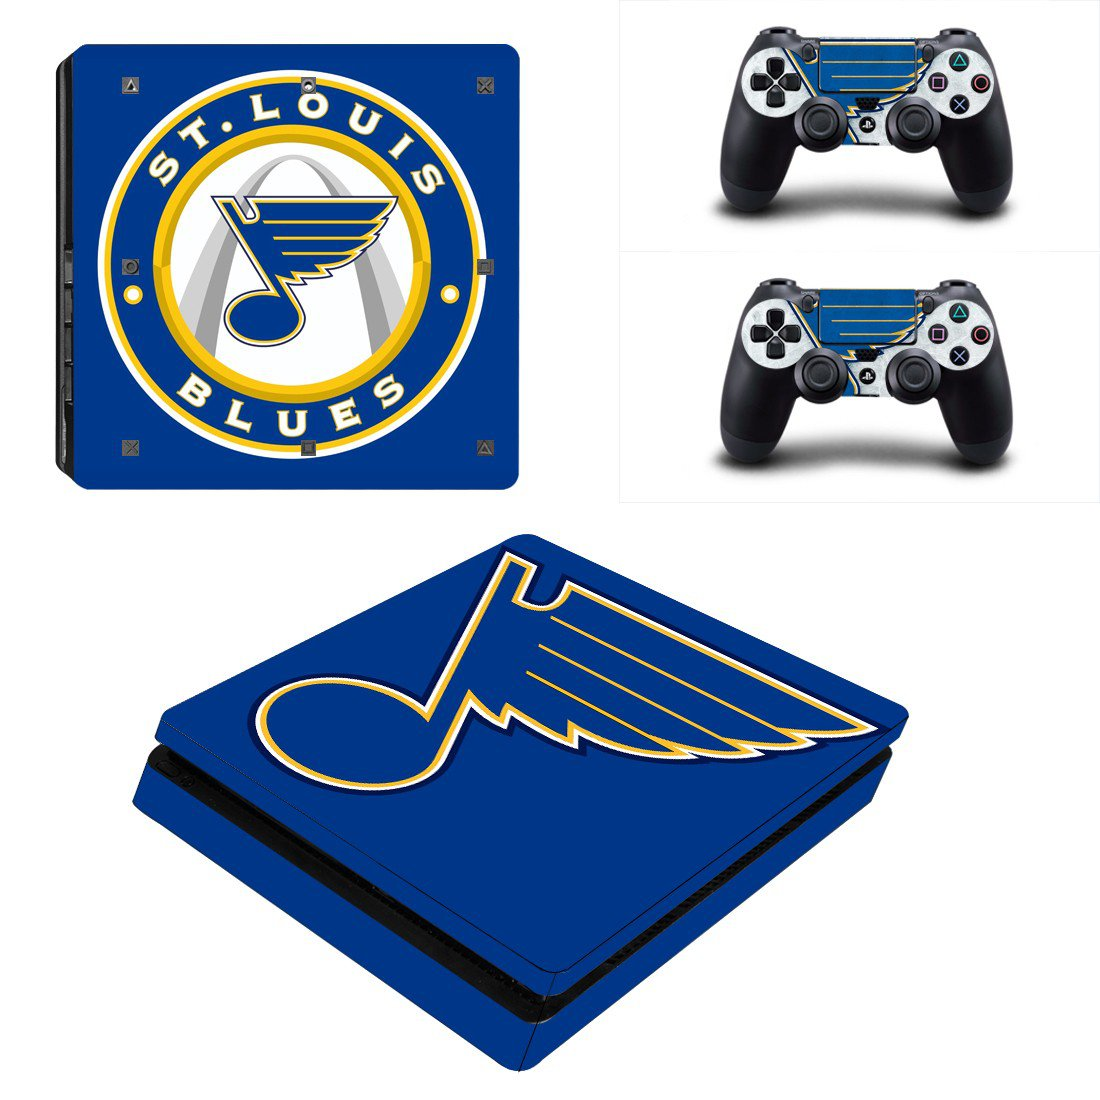 St. Louis Blues Play Station 4 slim skin decal for console and 2 controllers